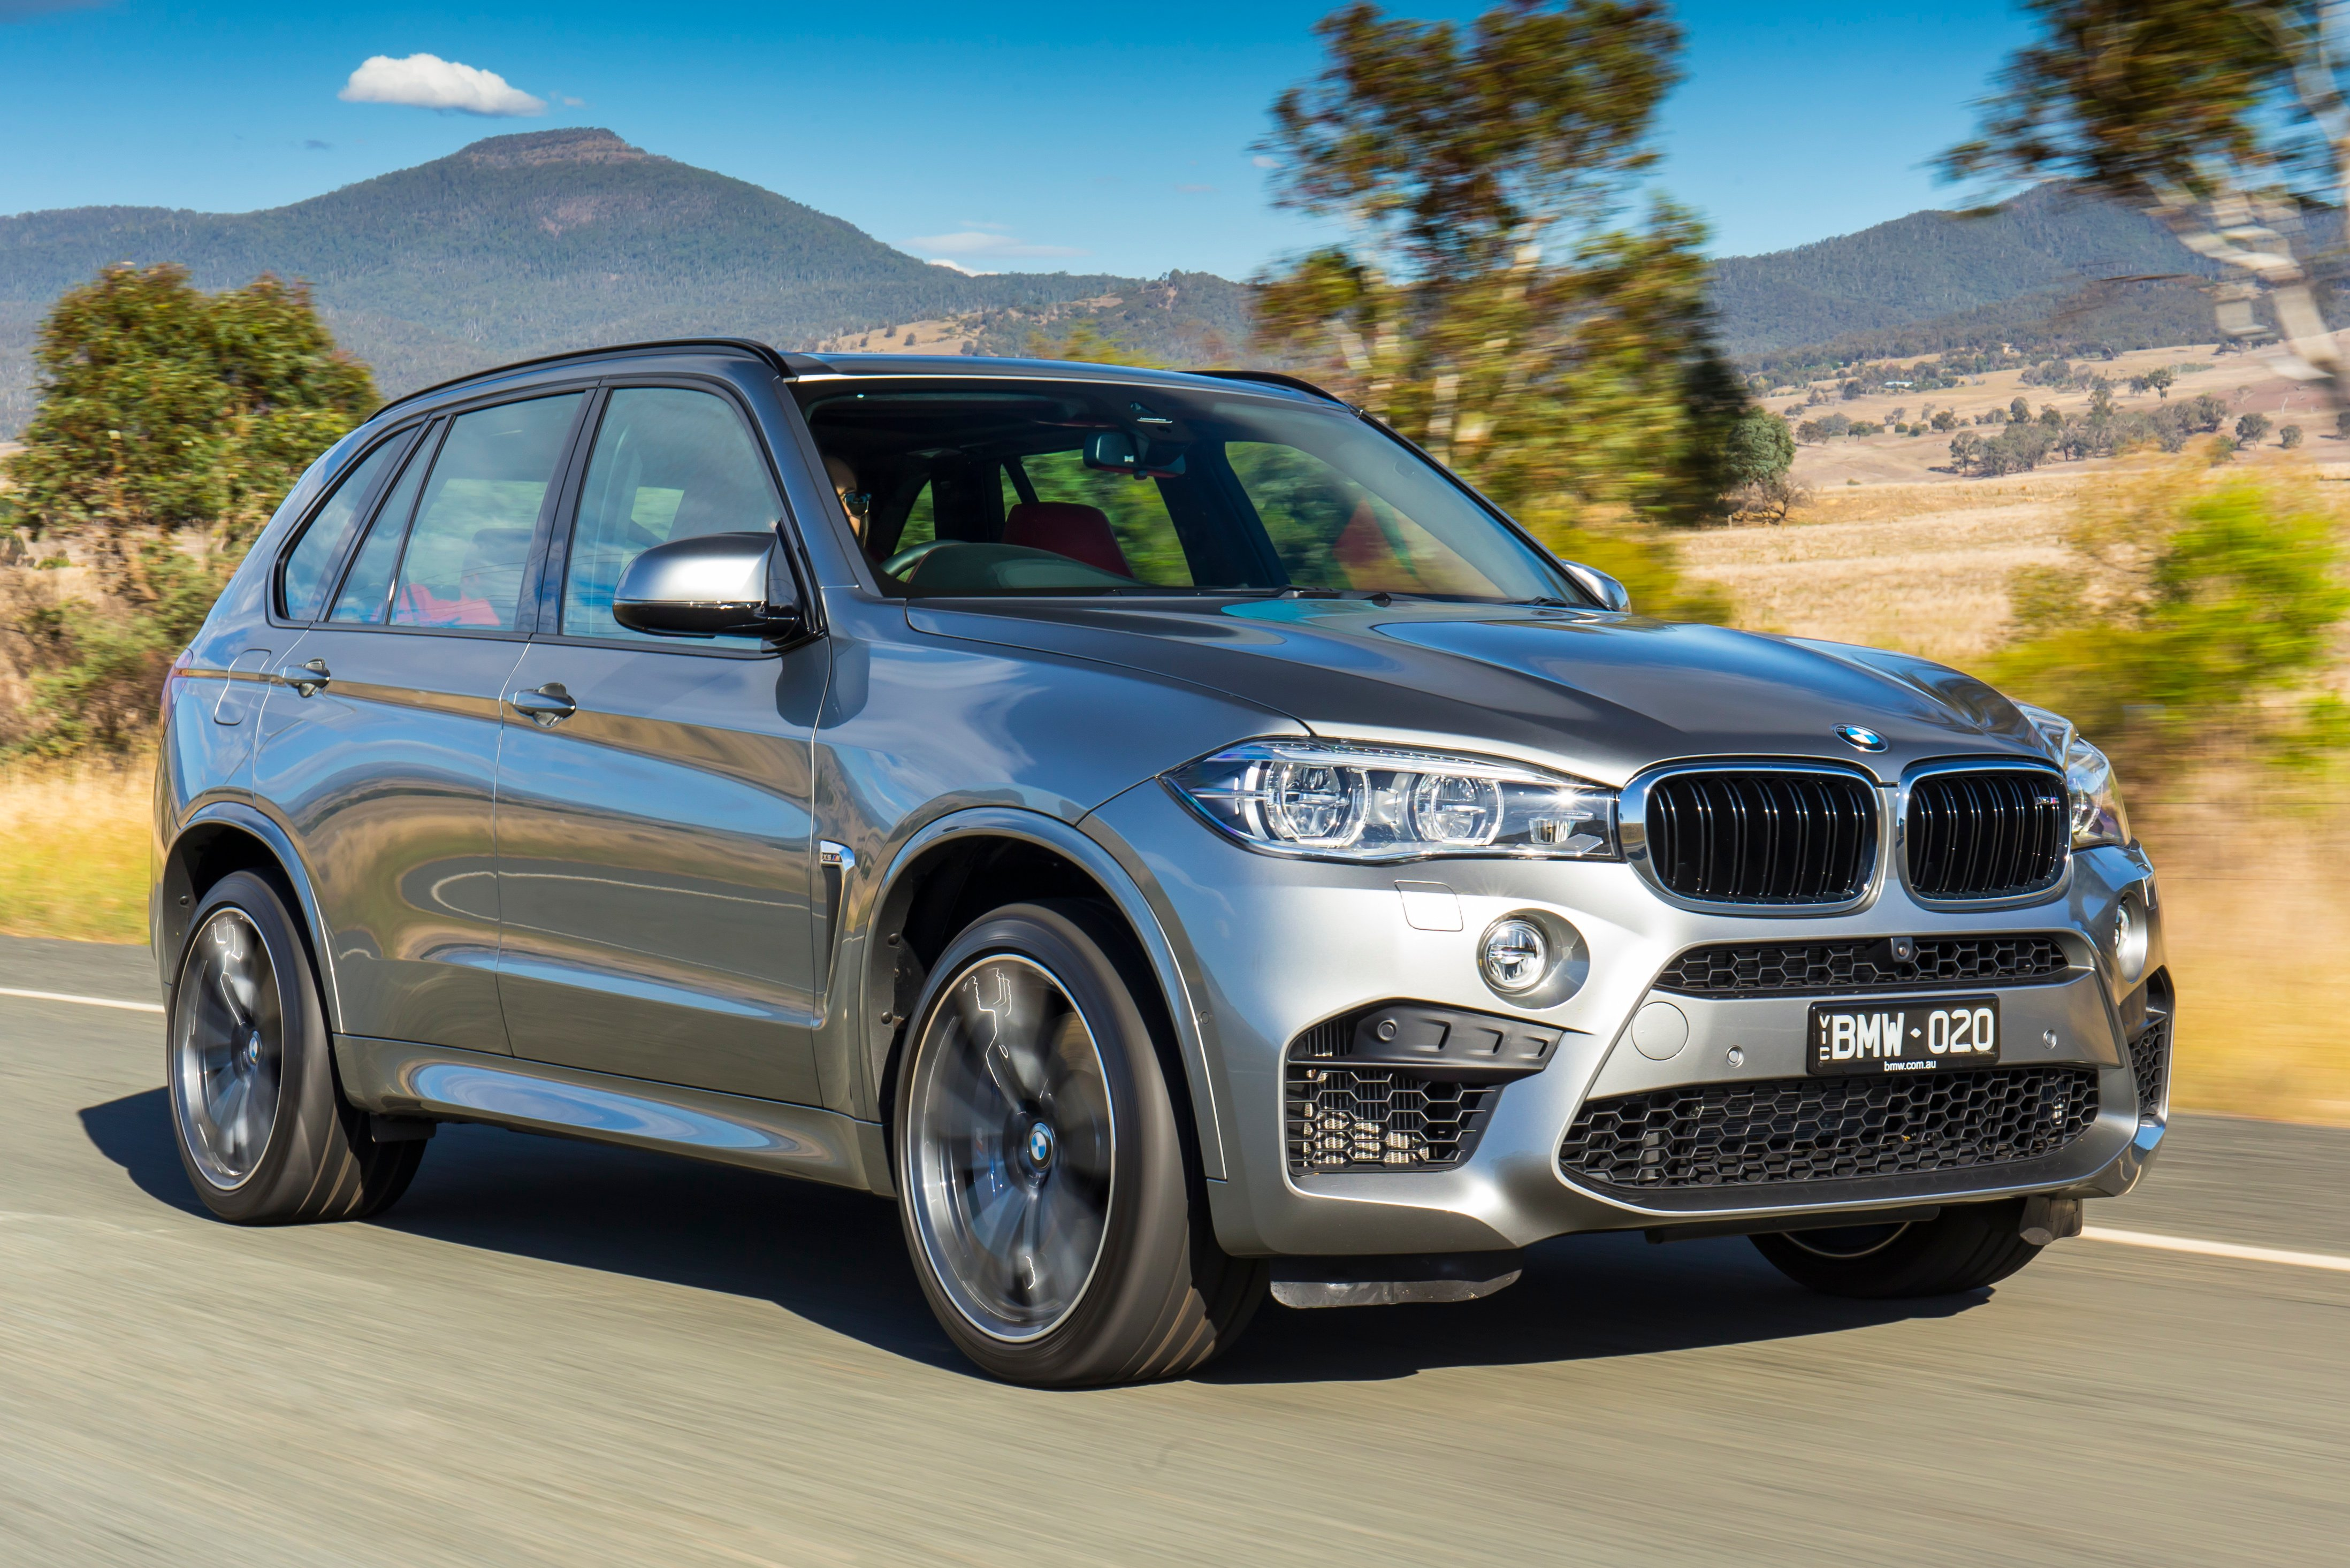 2015 bmw x5 m and x6 m review caradvice. Black Bedroom Furniture Sets. Home Design Ideas